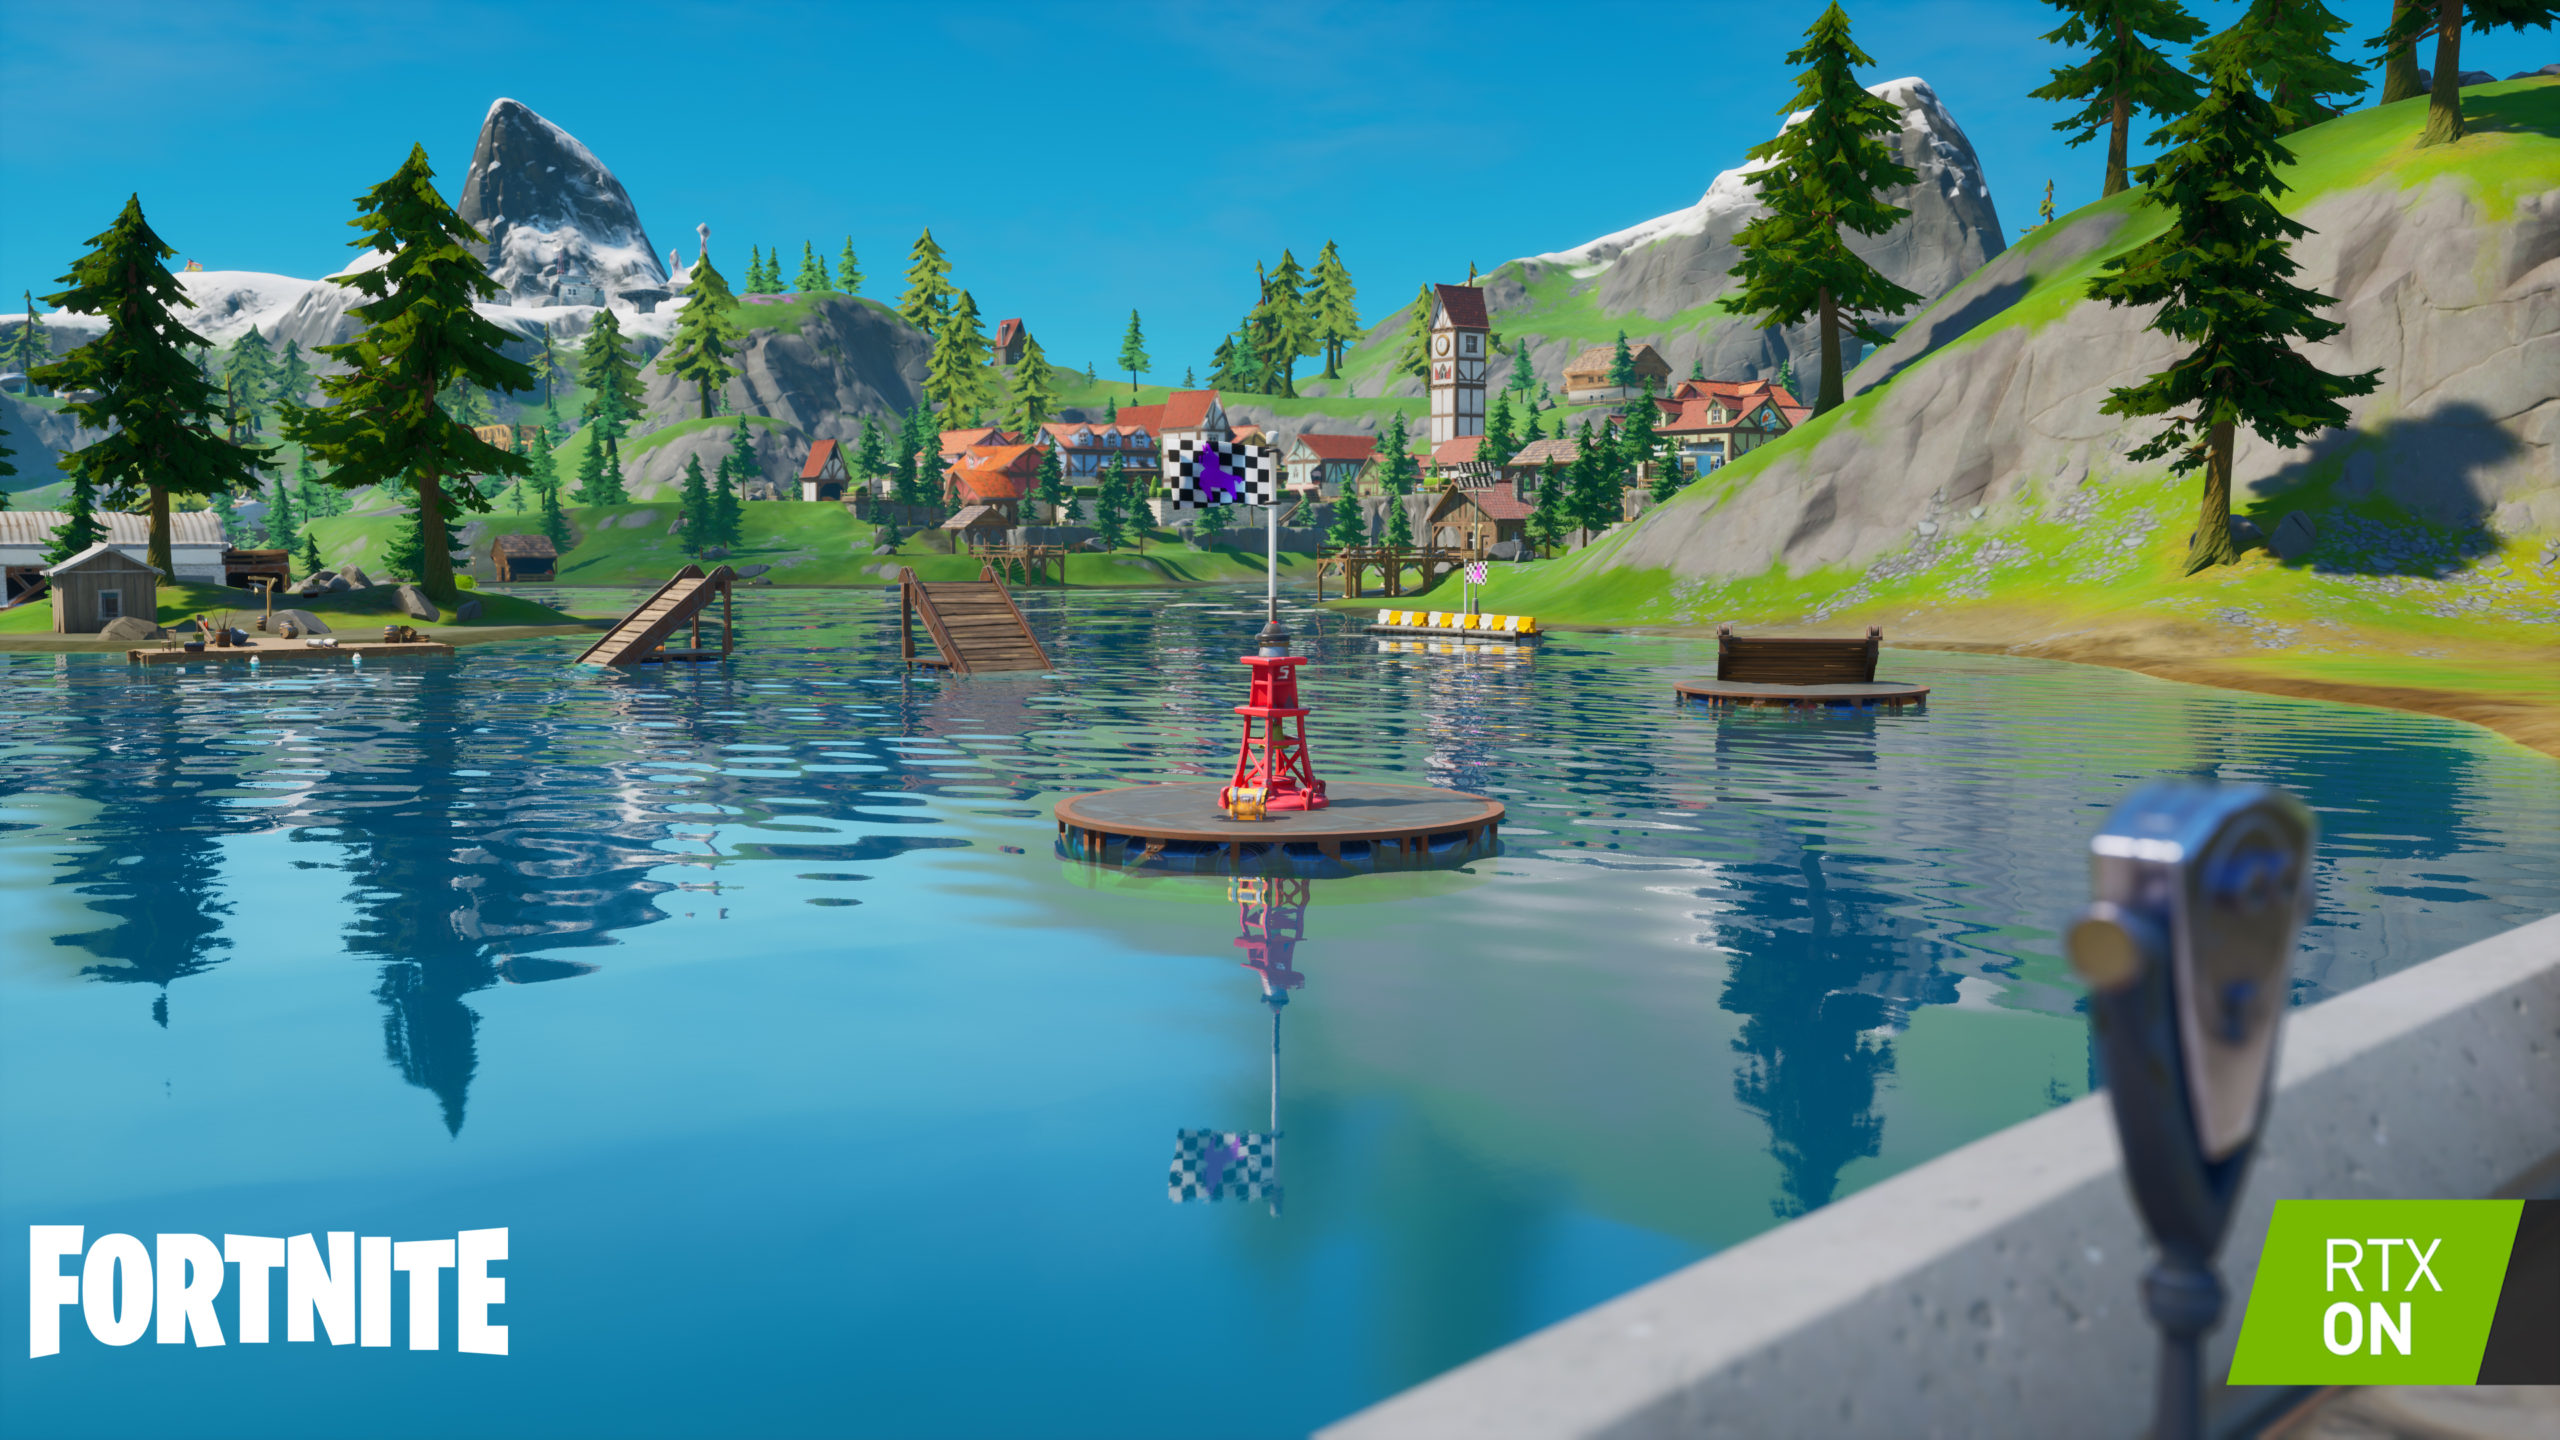 fortnite-geforce-rtx-screenshot-001-rtx-on